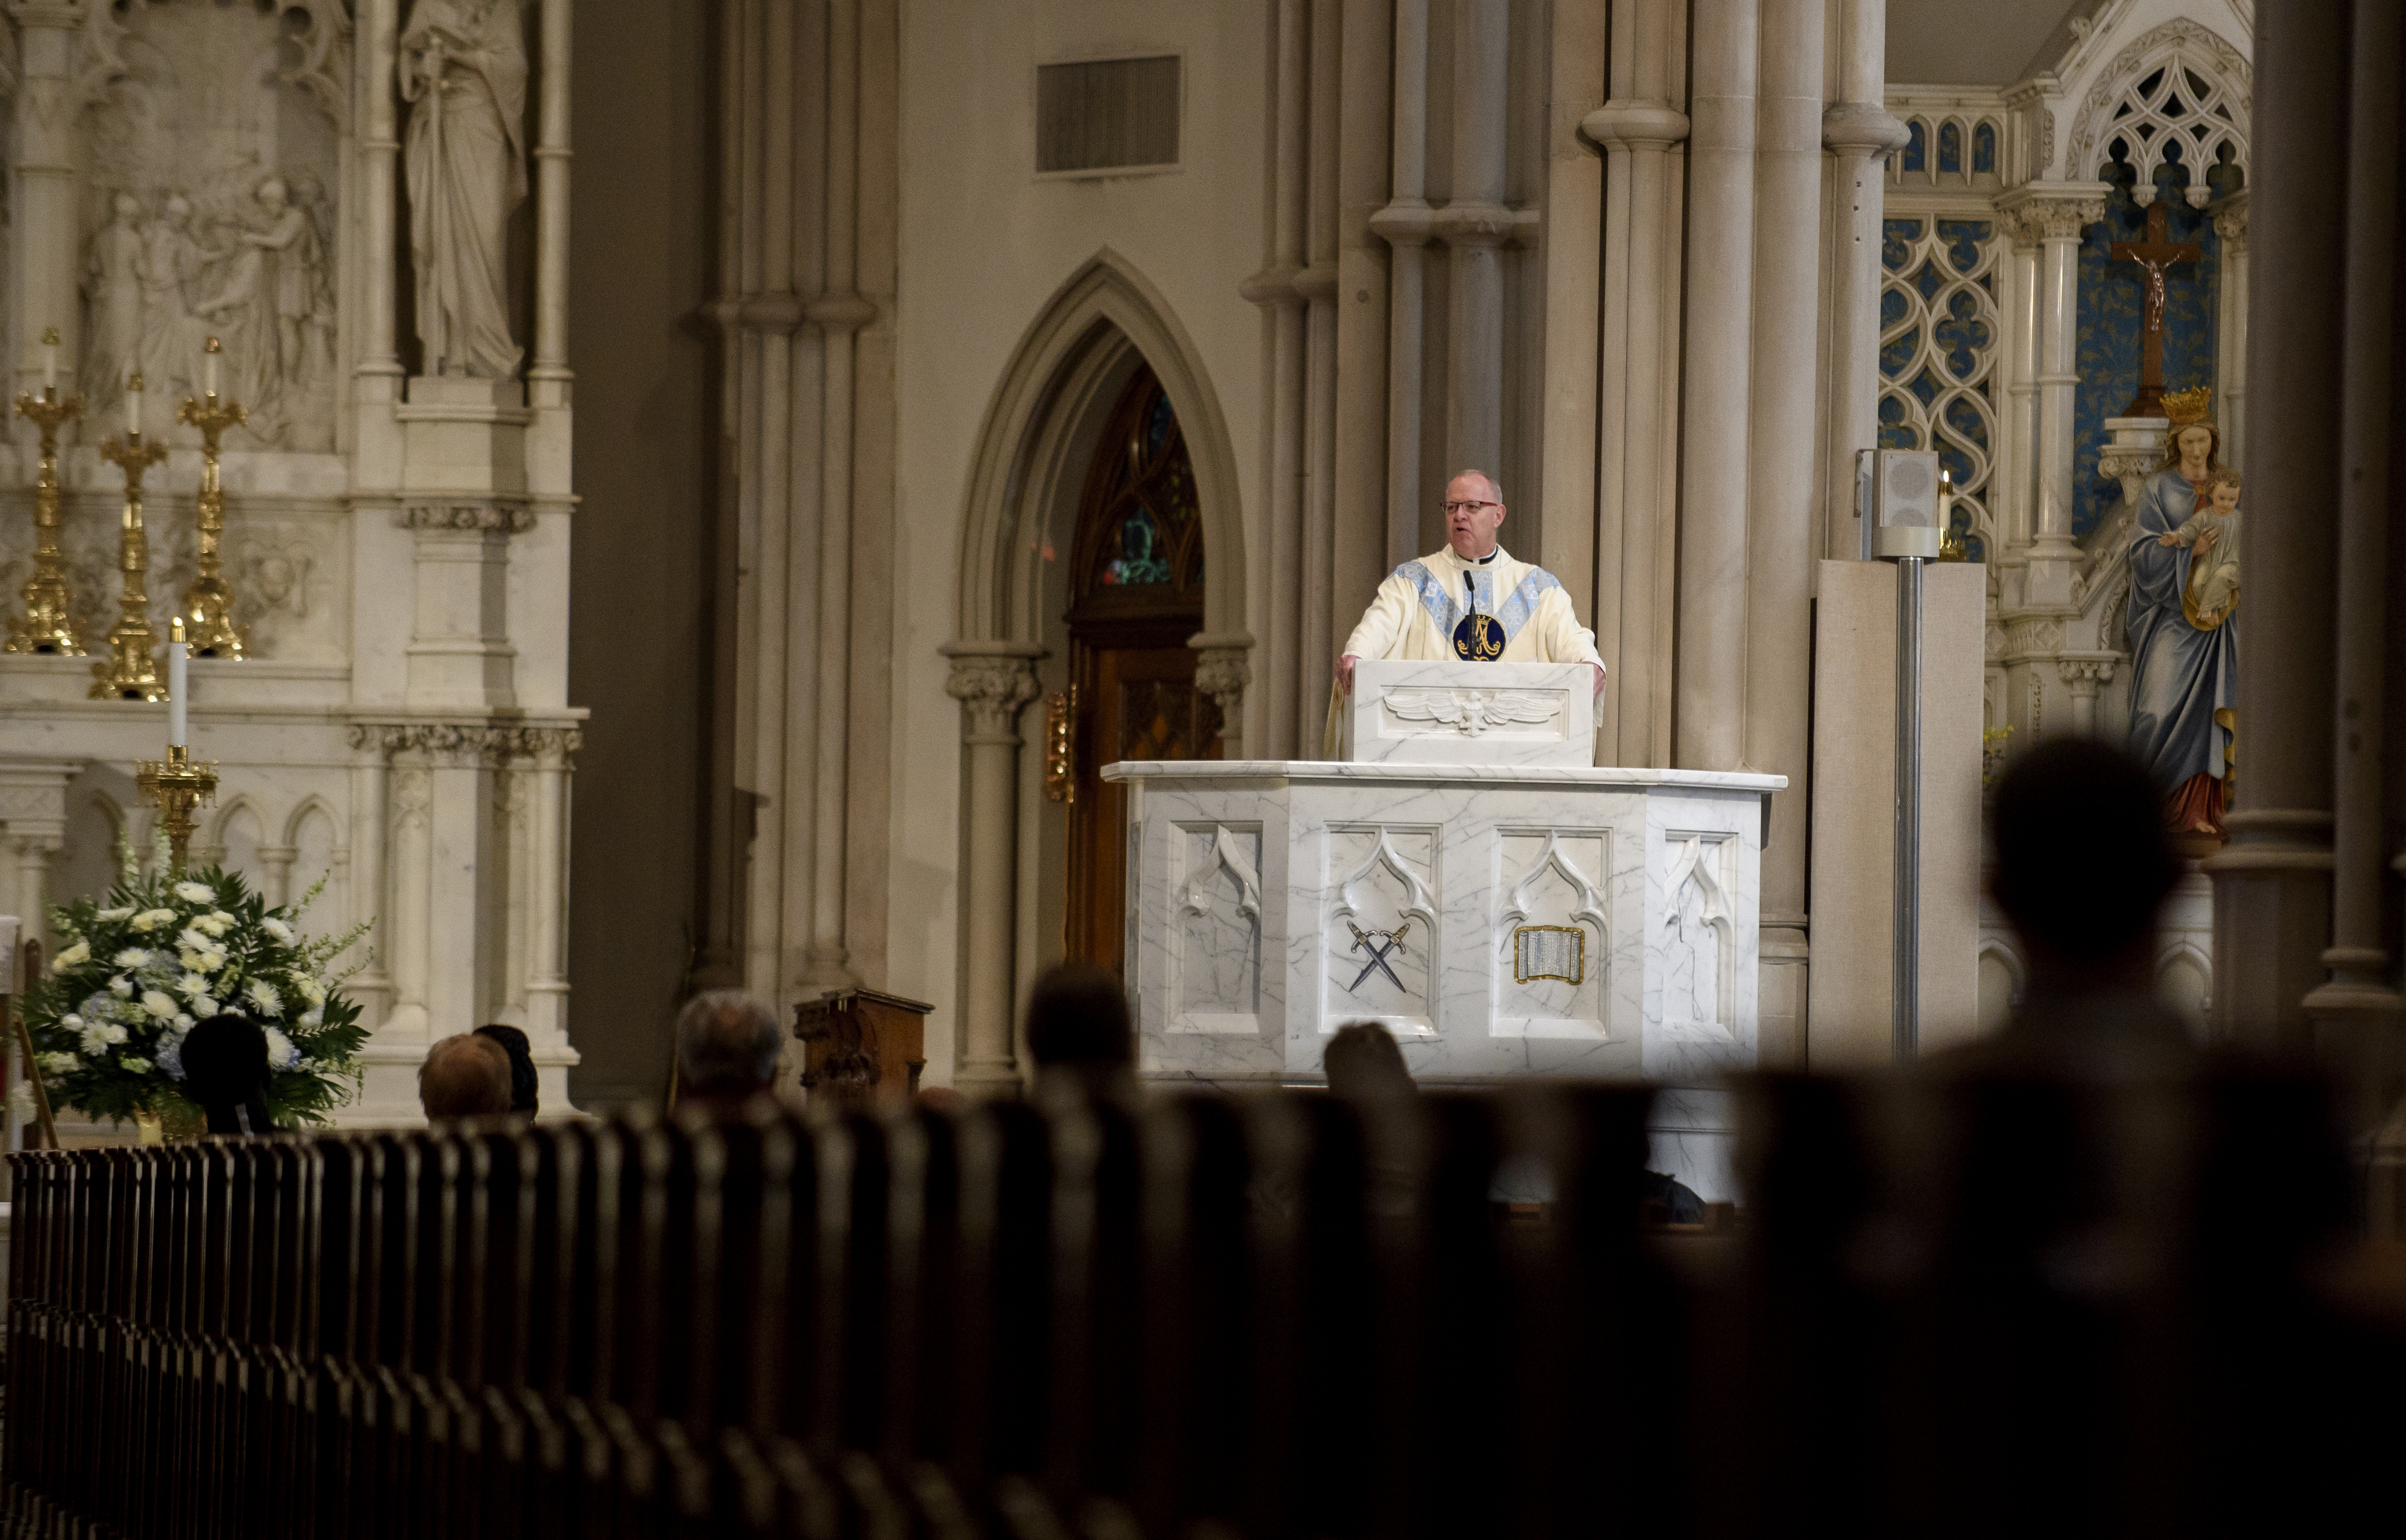 Father Kris Stubna speaks to parishioners at St. Paul Cathedral, the mother church of the Pittsburgh Diocese, on August 15, 2018, in Pittsburgh, Penn.